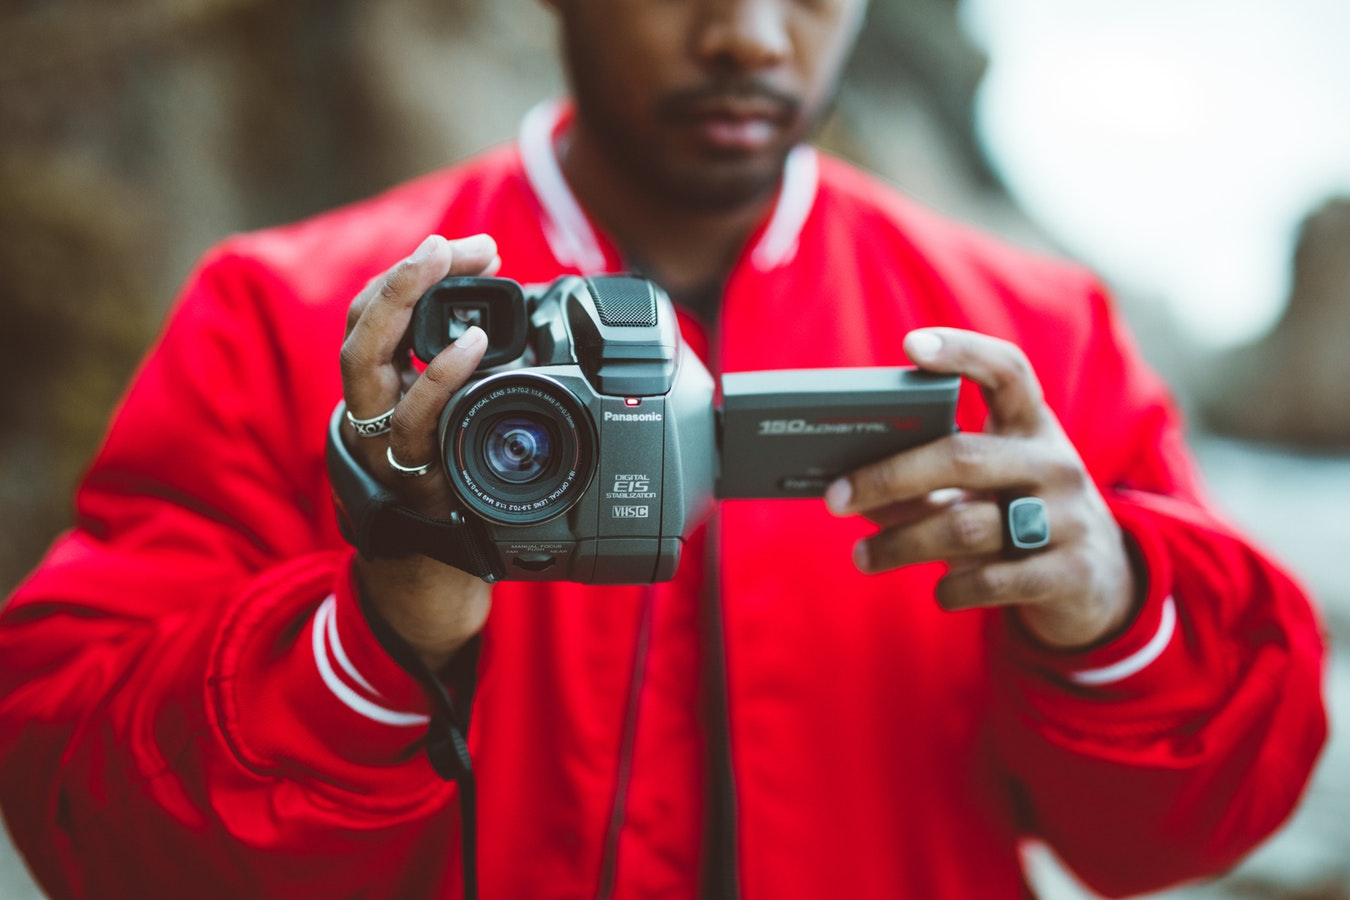 Guy holding camcorder toward camera - choosing the best video camera for beginners